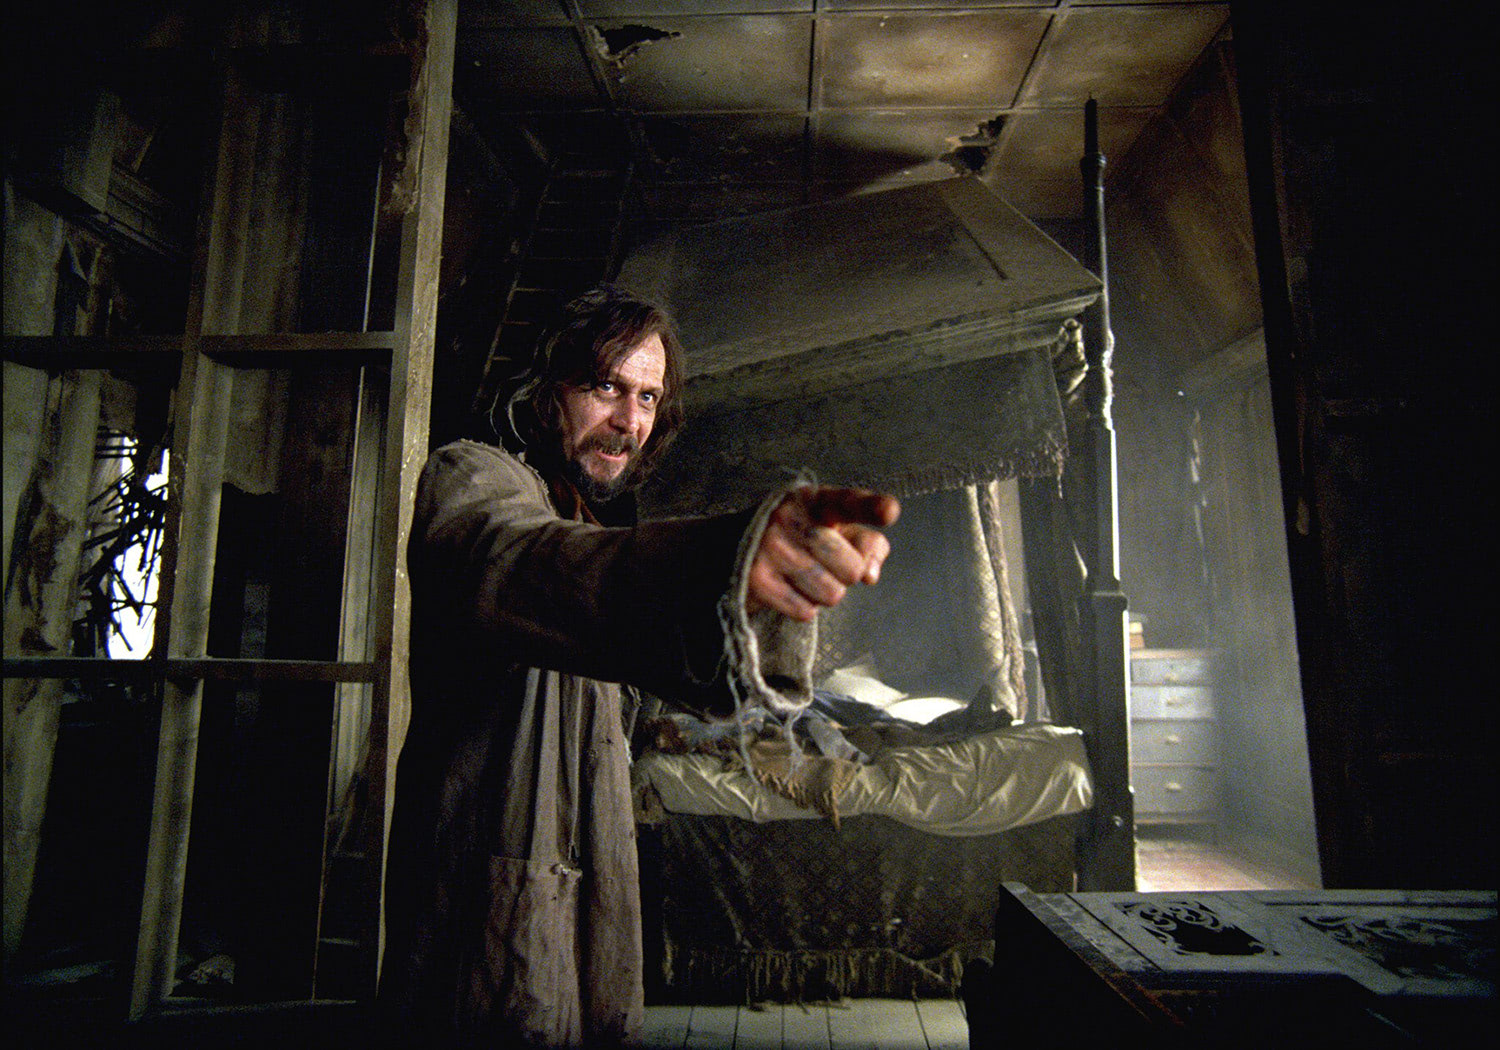 Sirius Black in the Shrieking Shack